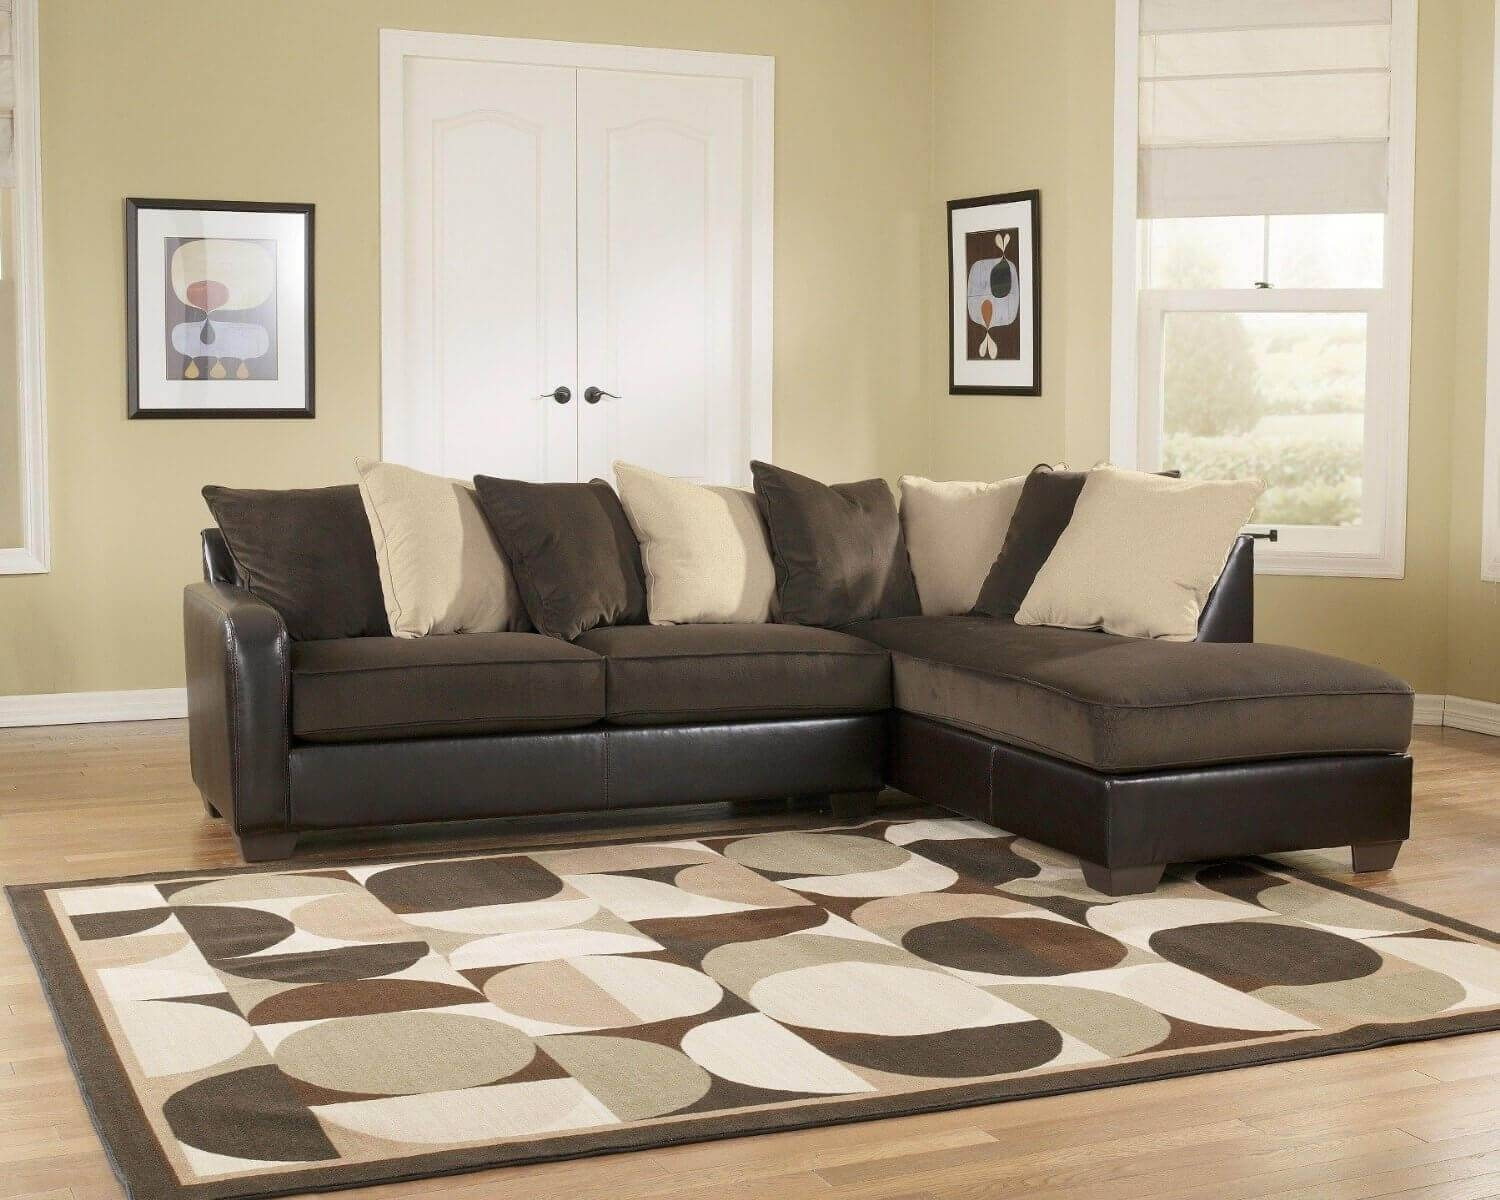 12 Collection Of Durable Sectional Sofa for Durable Sectional Sofa (Image 1 of 30)